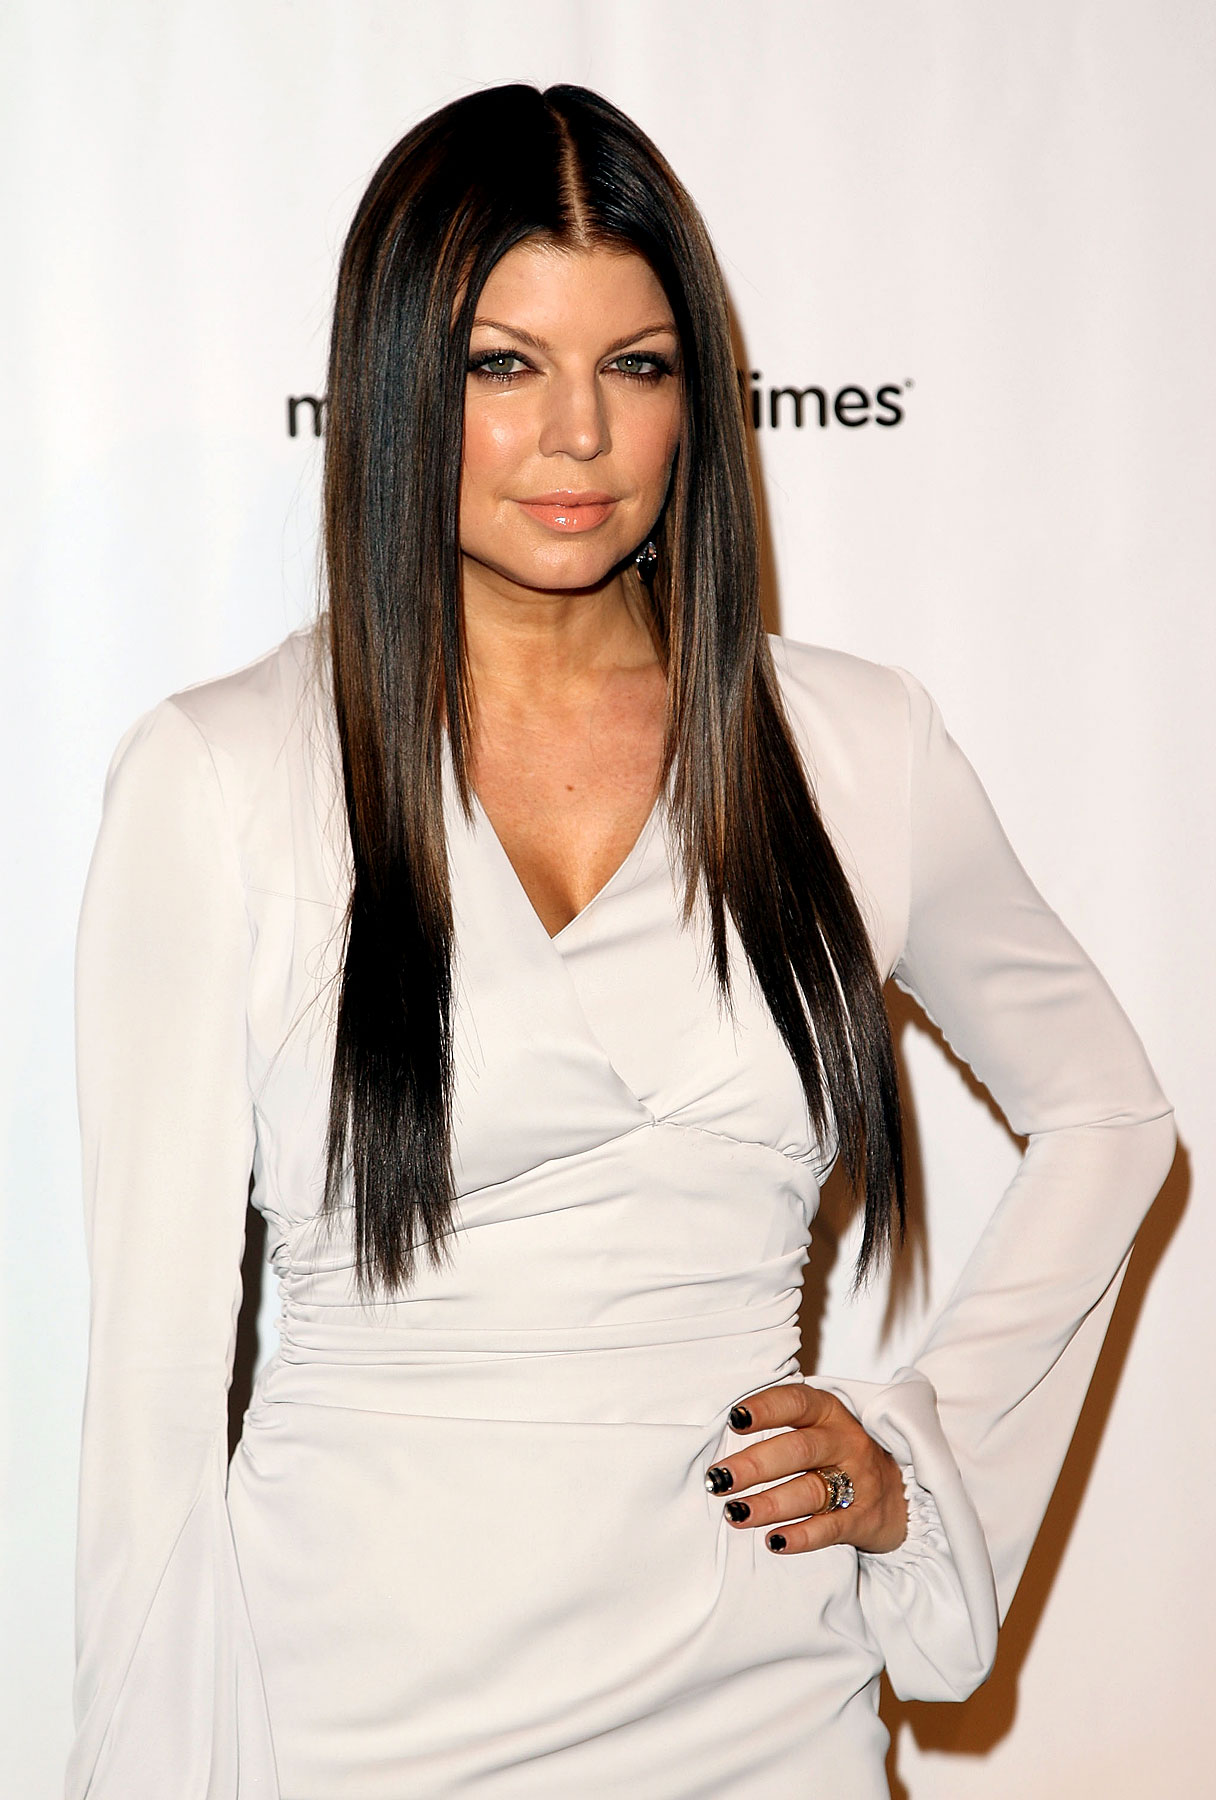 Fergie Is a Black-Haired Pea